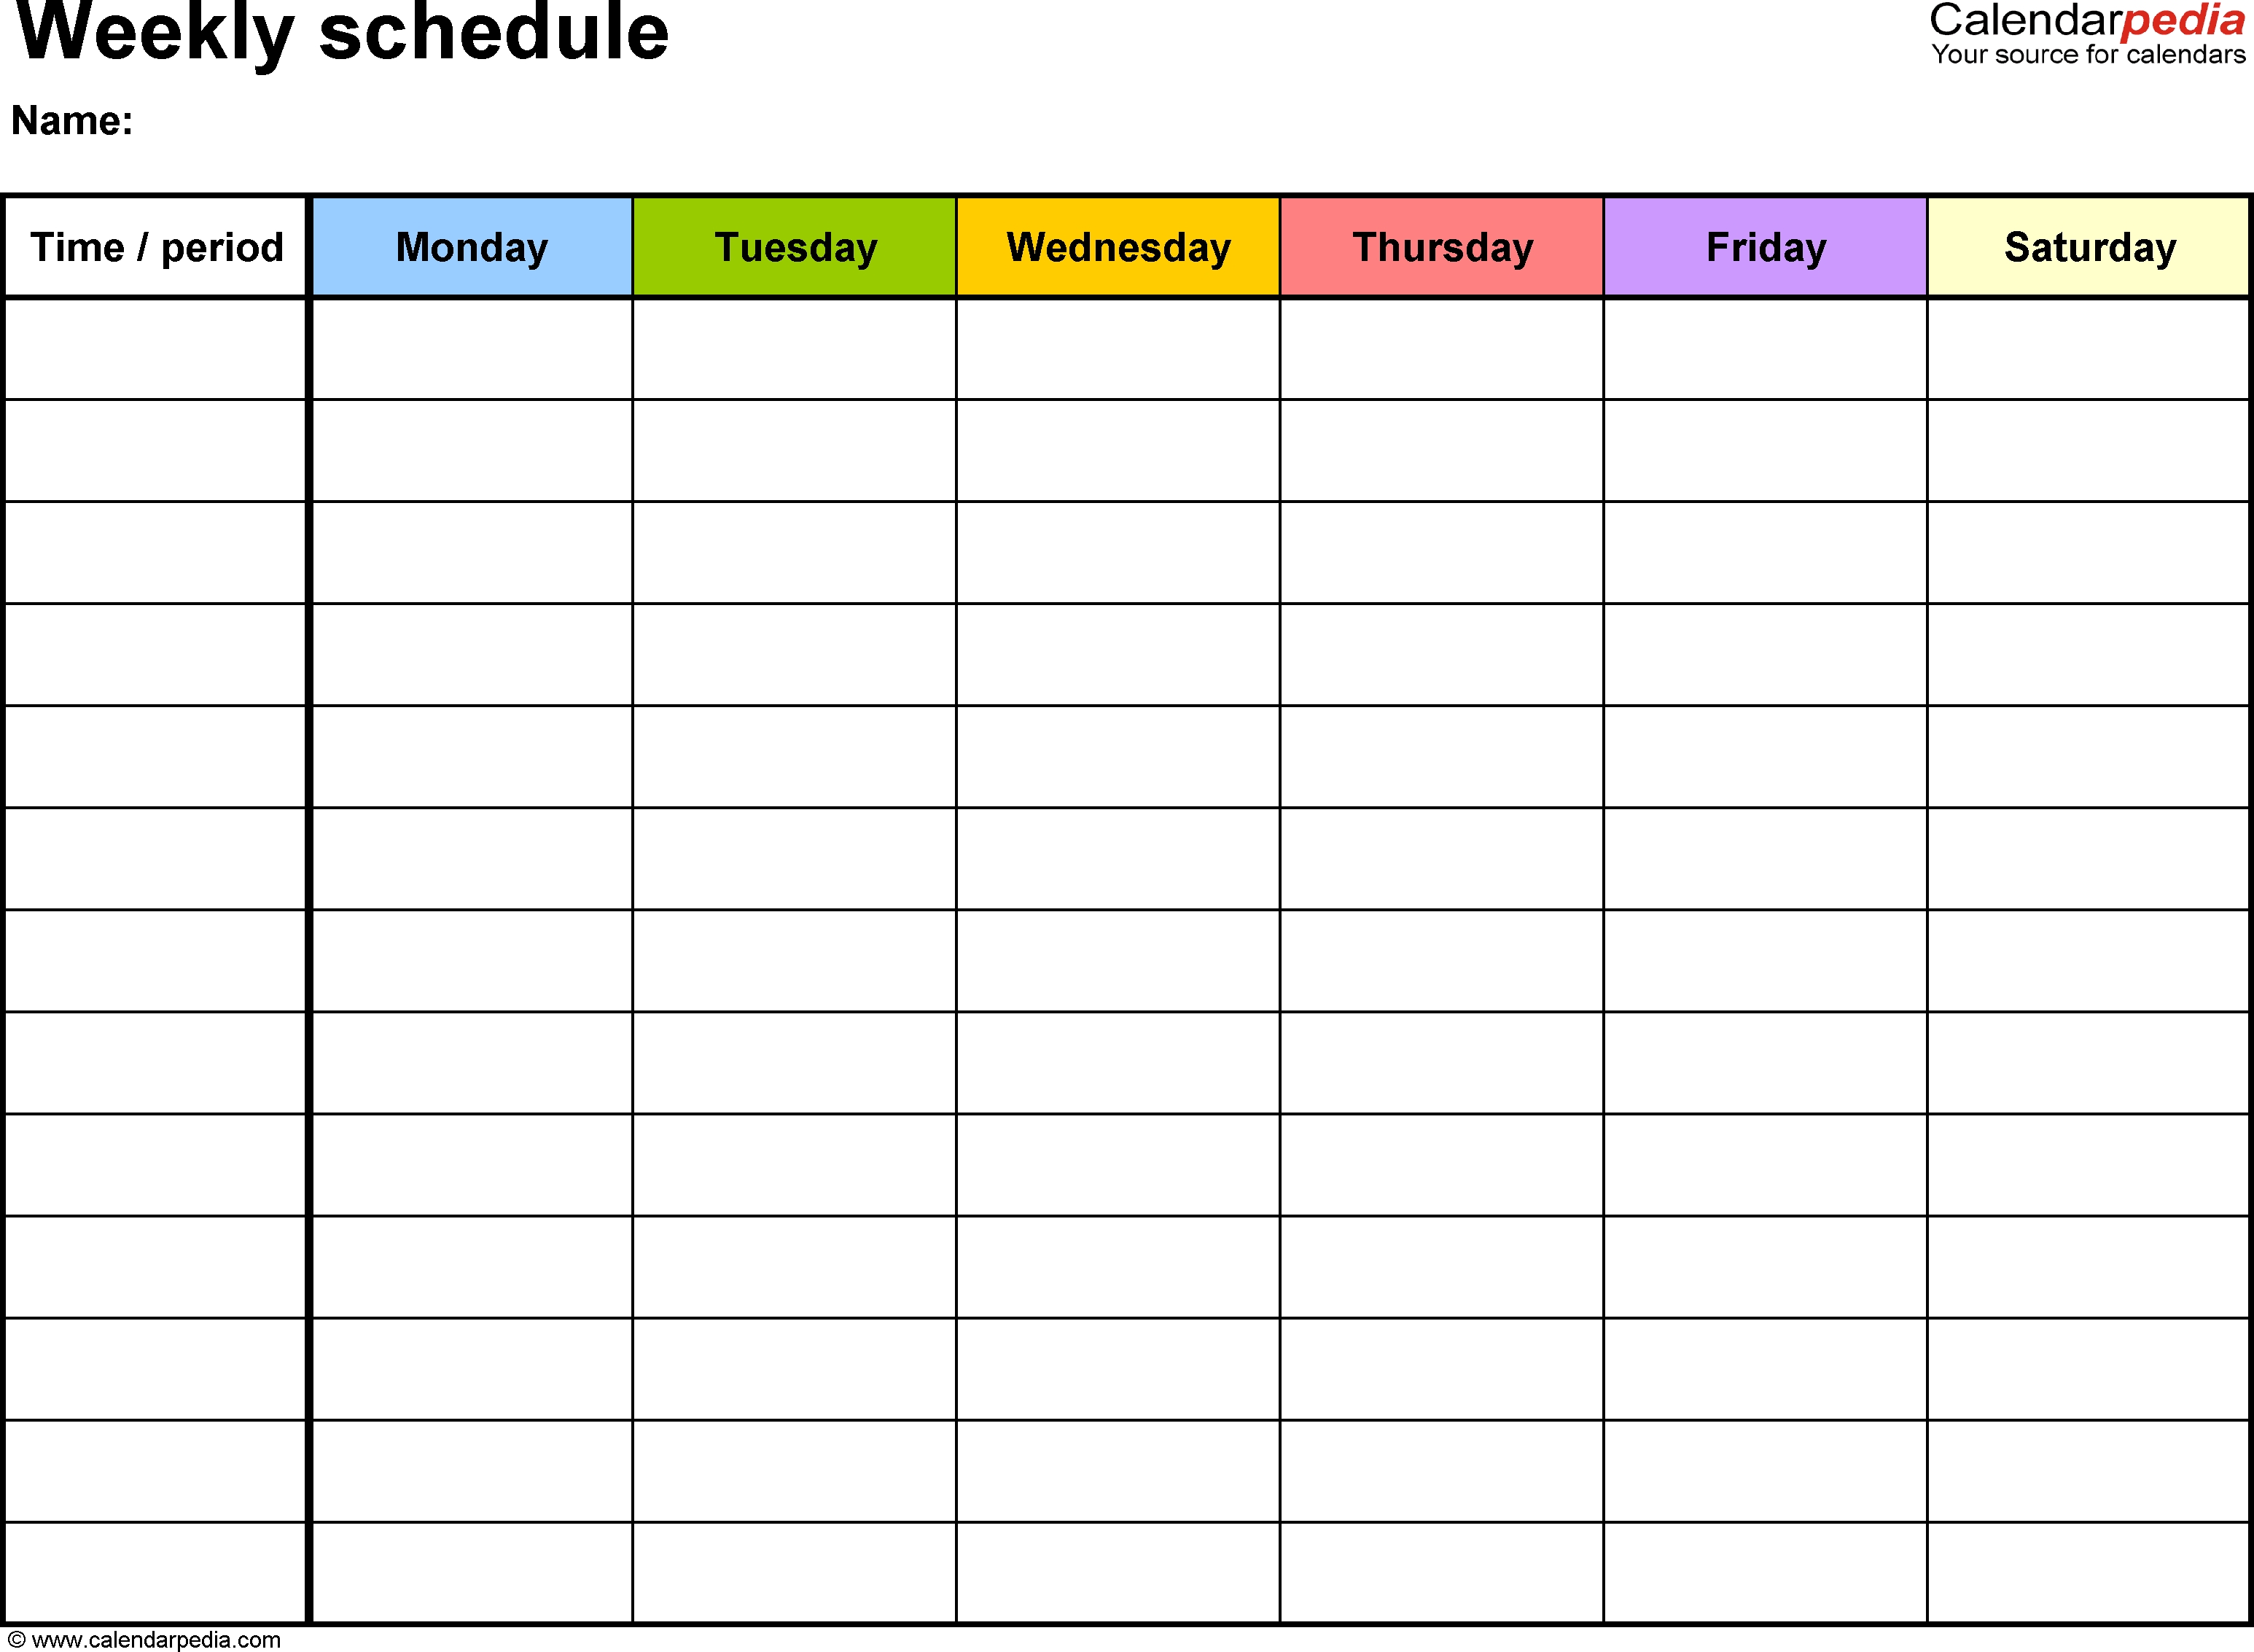 Free Weekly Schedule Templates For Word - 18 Templates within Schedule Of Activities Calendar Format